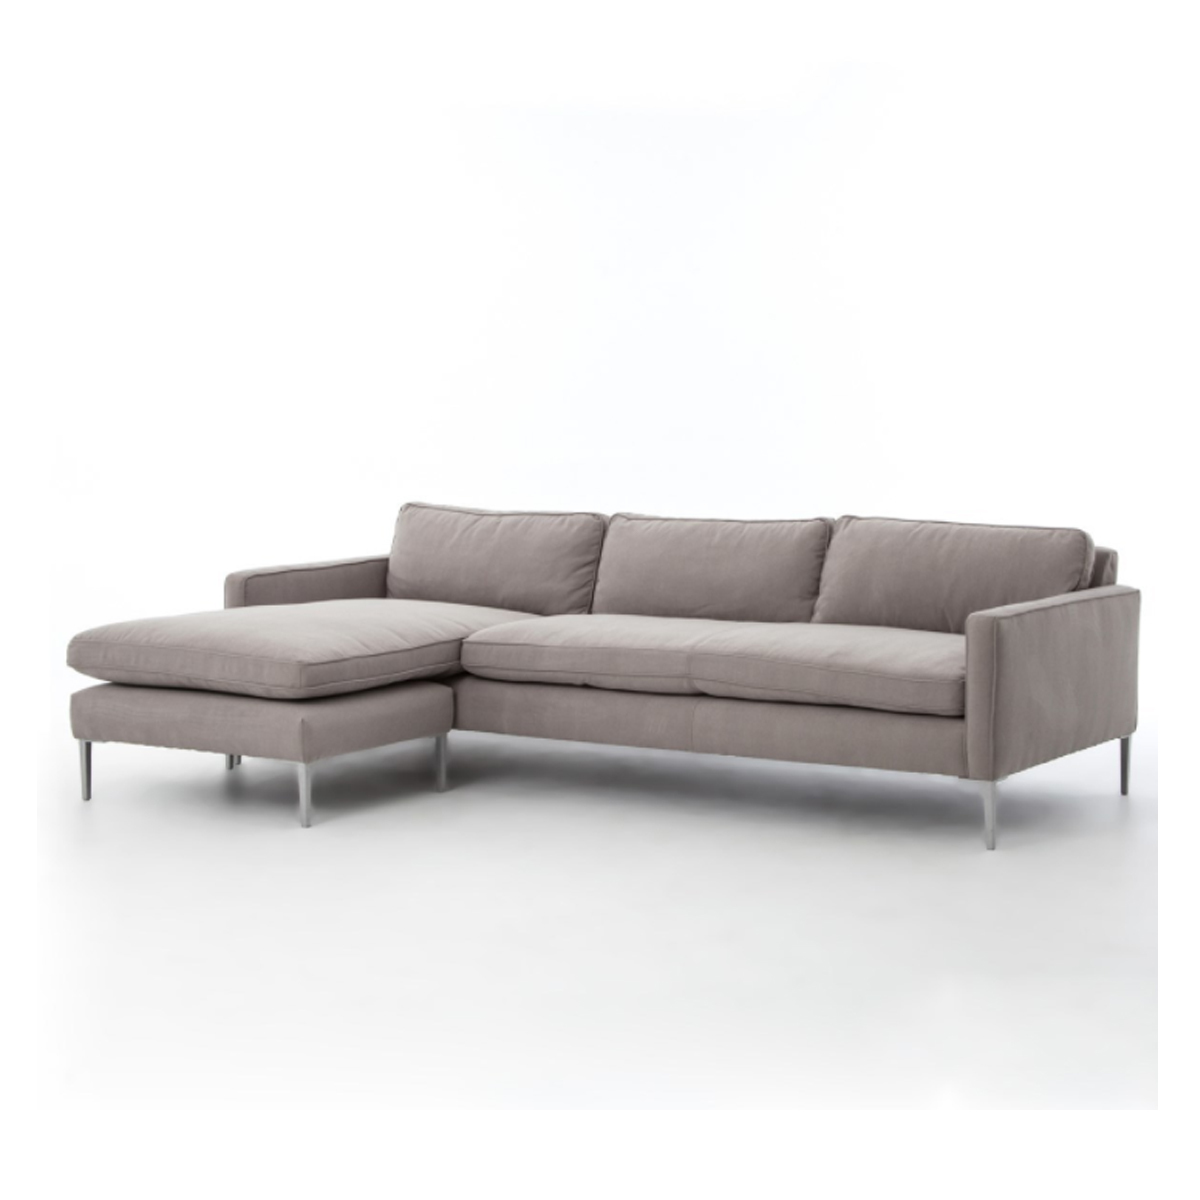 Living Room: Sherbrooke Flip Sofa in Twill Pewter photo